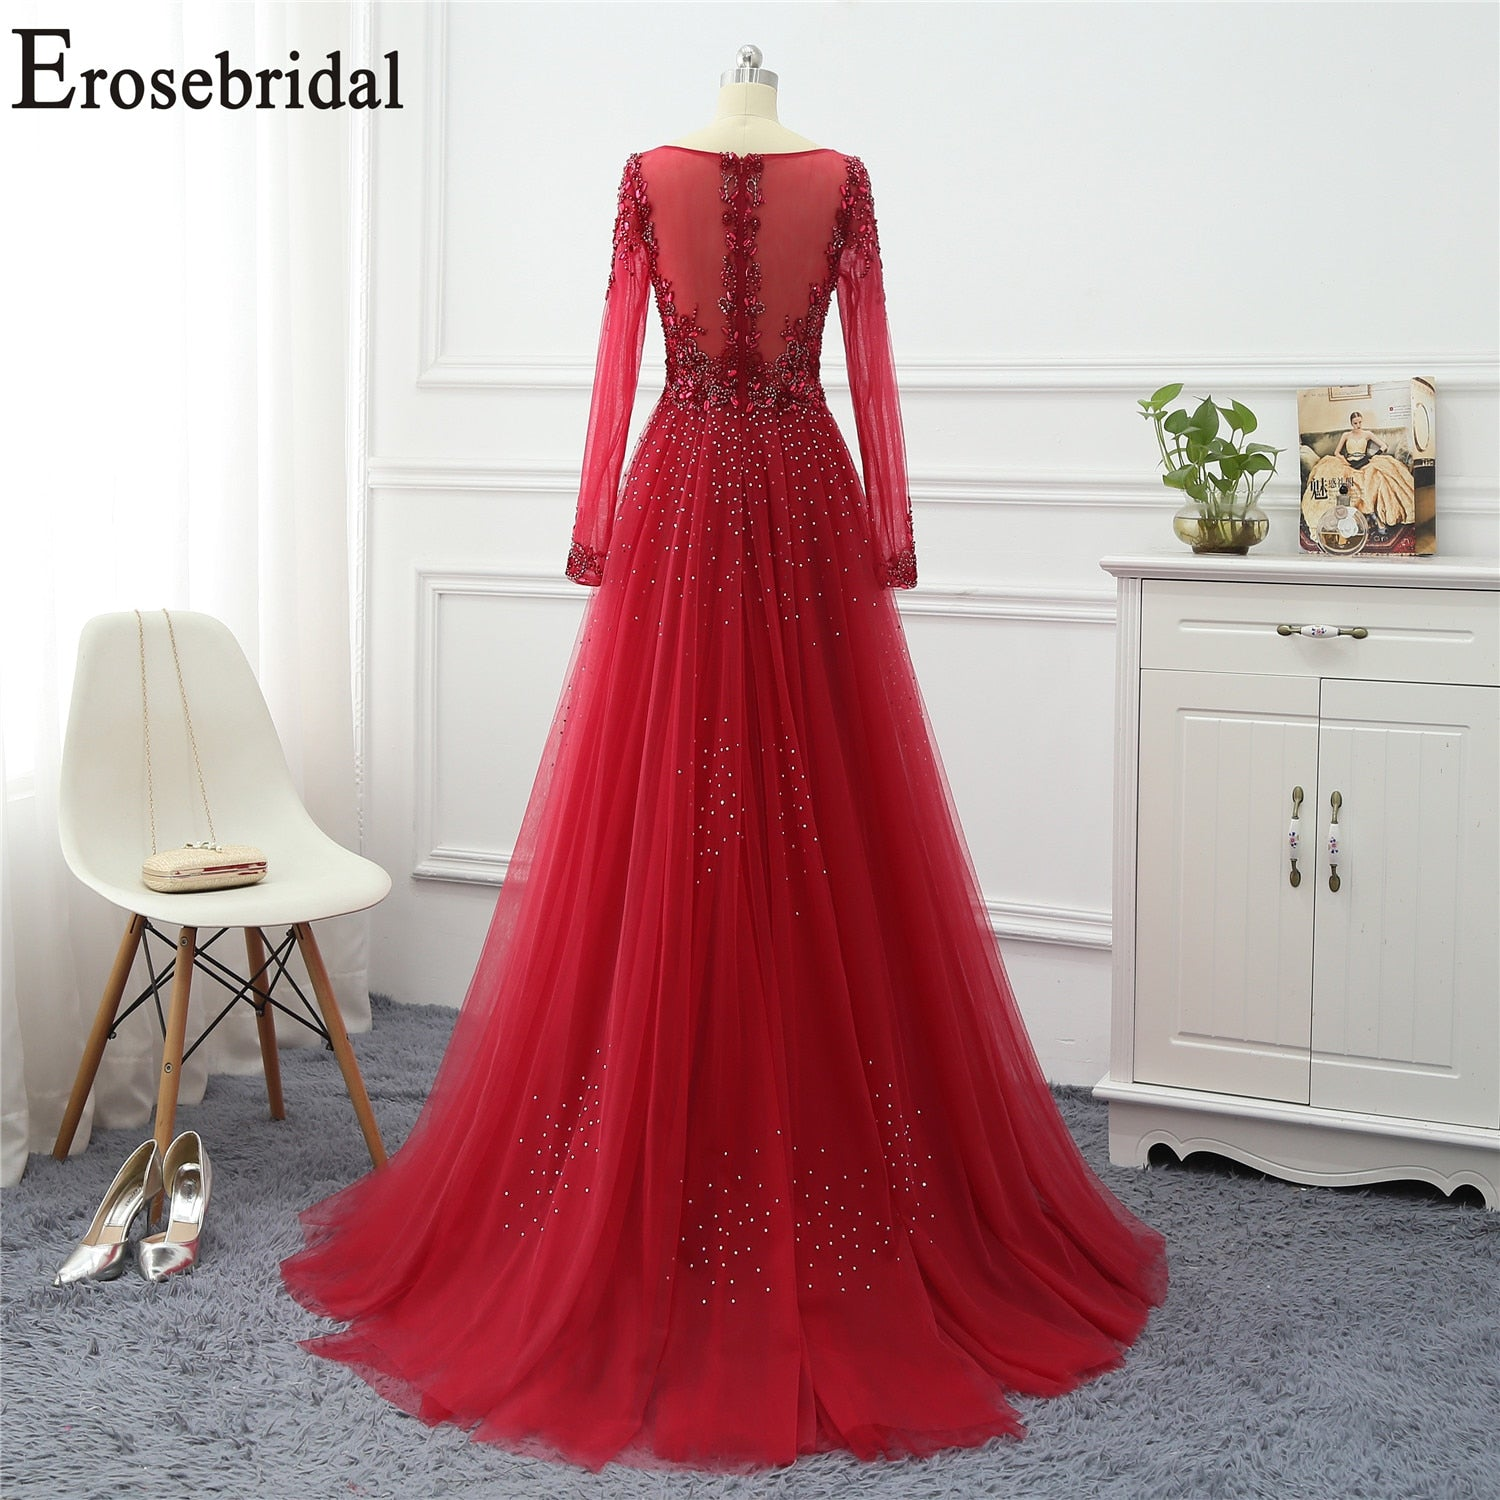 Erosebridal Elegant A Line Evening Gowns with Train for Women